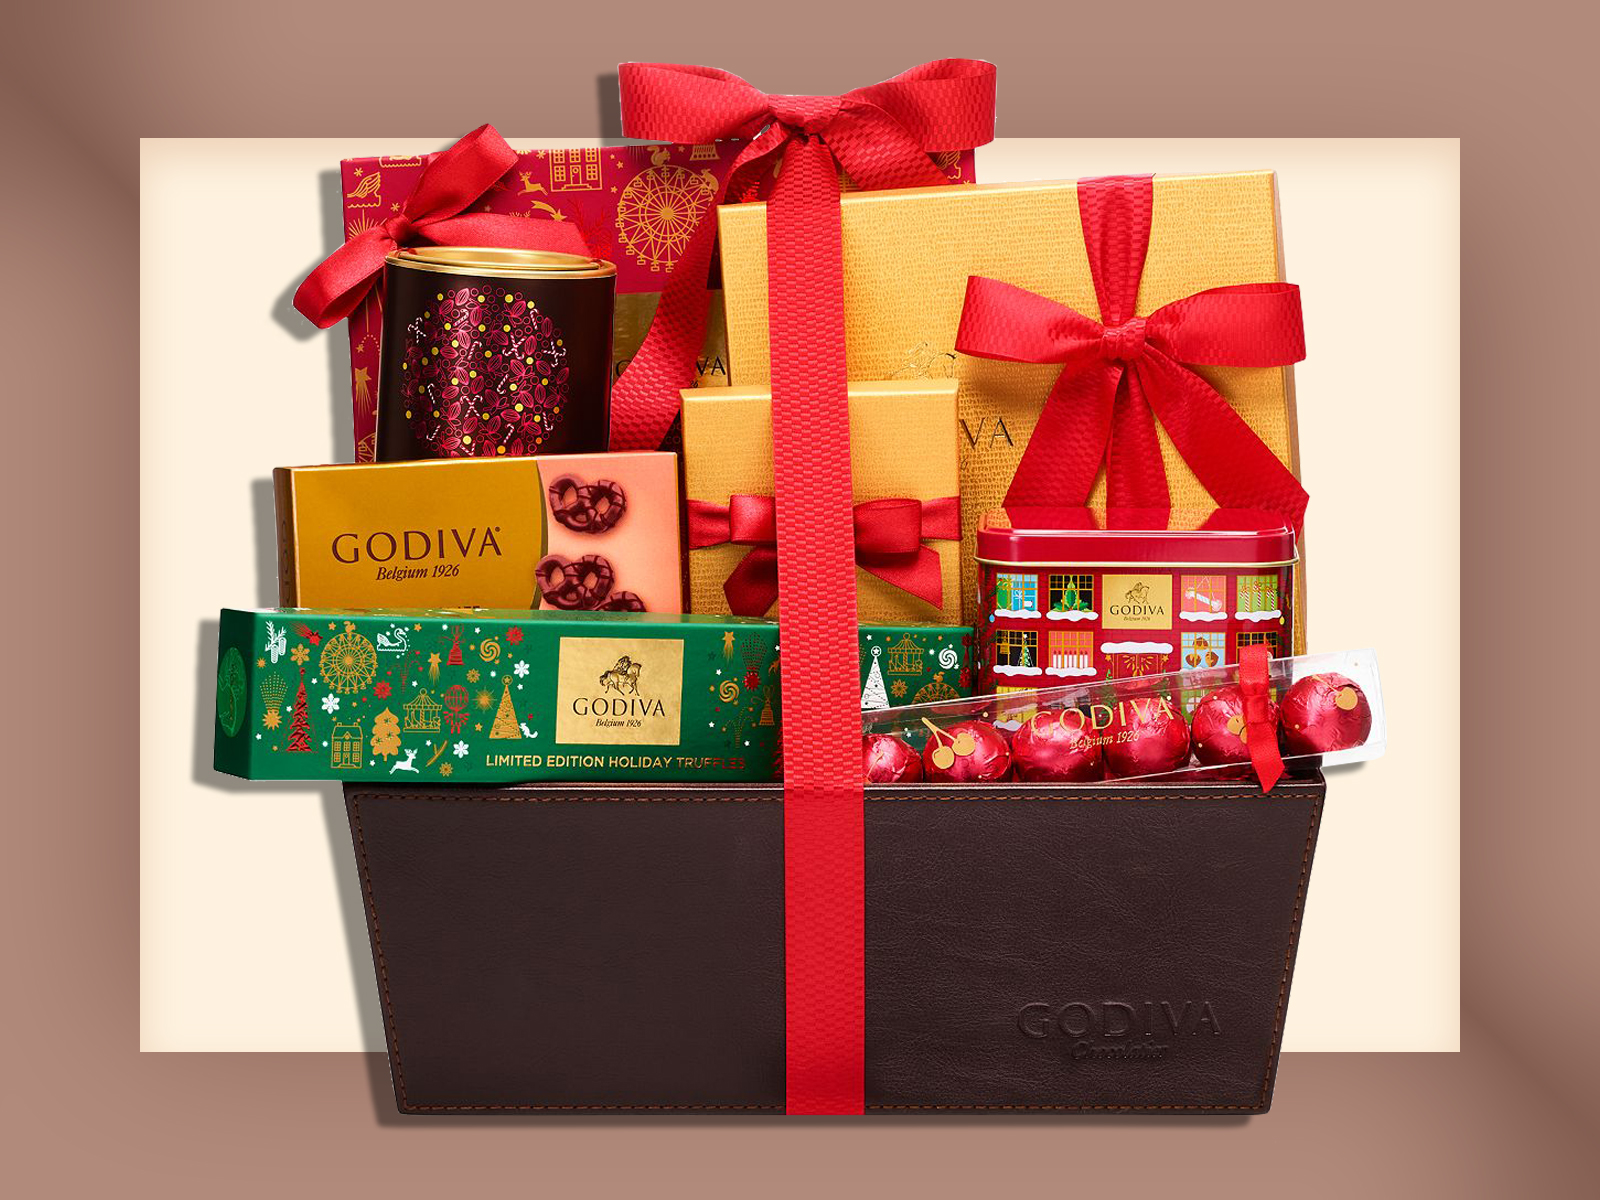 Godiva Holiday Gift Box